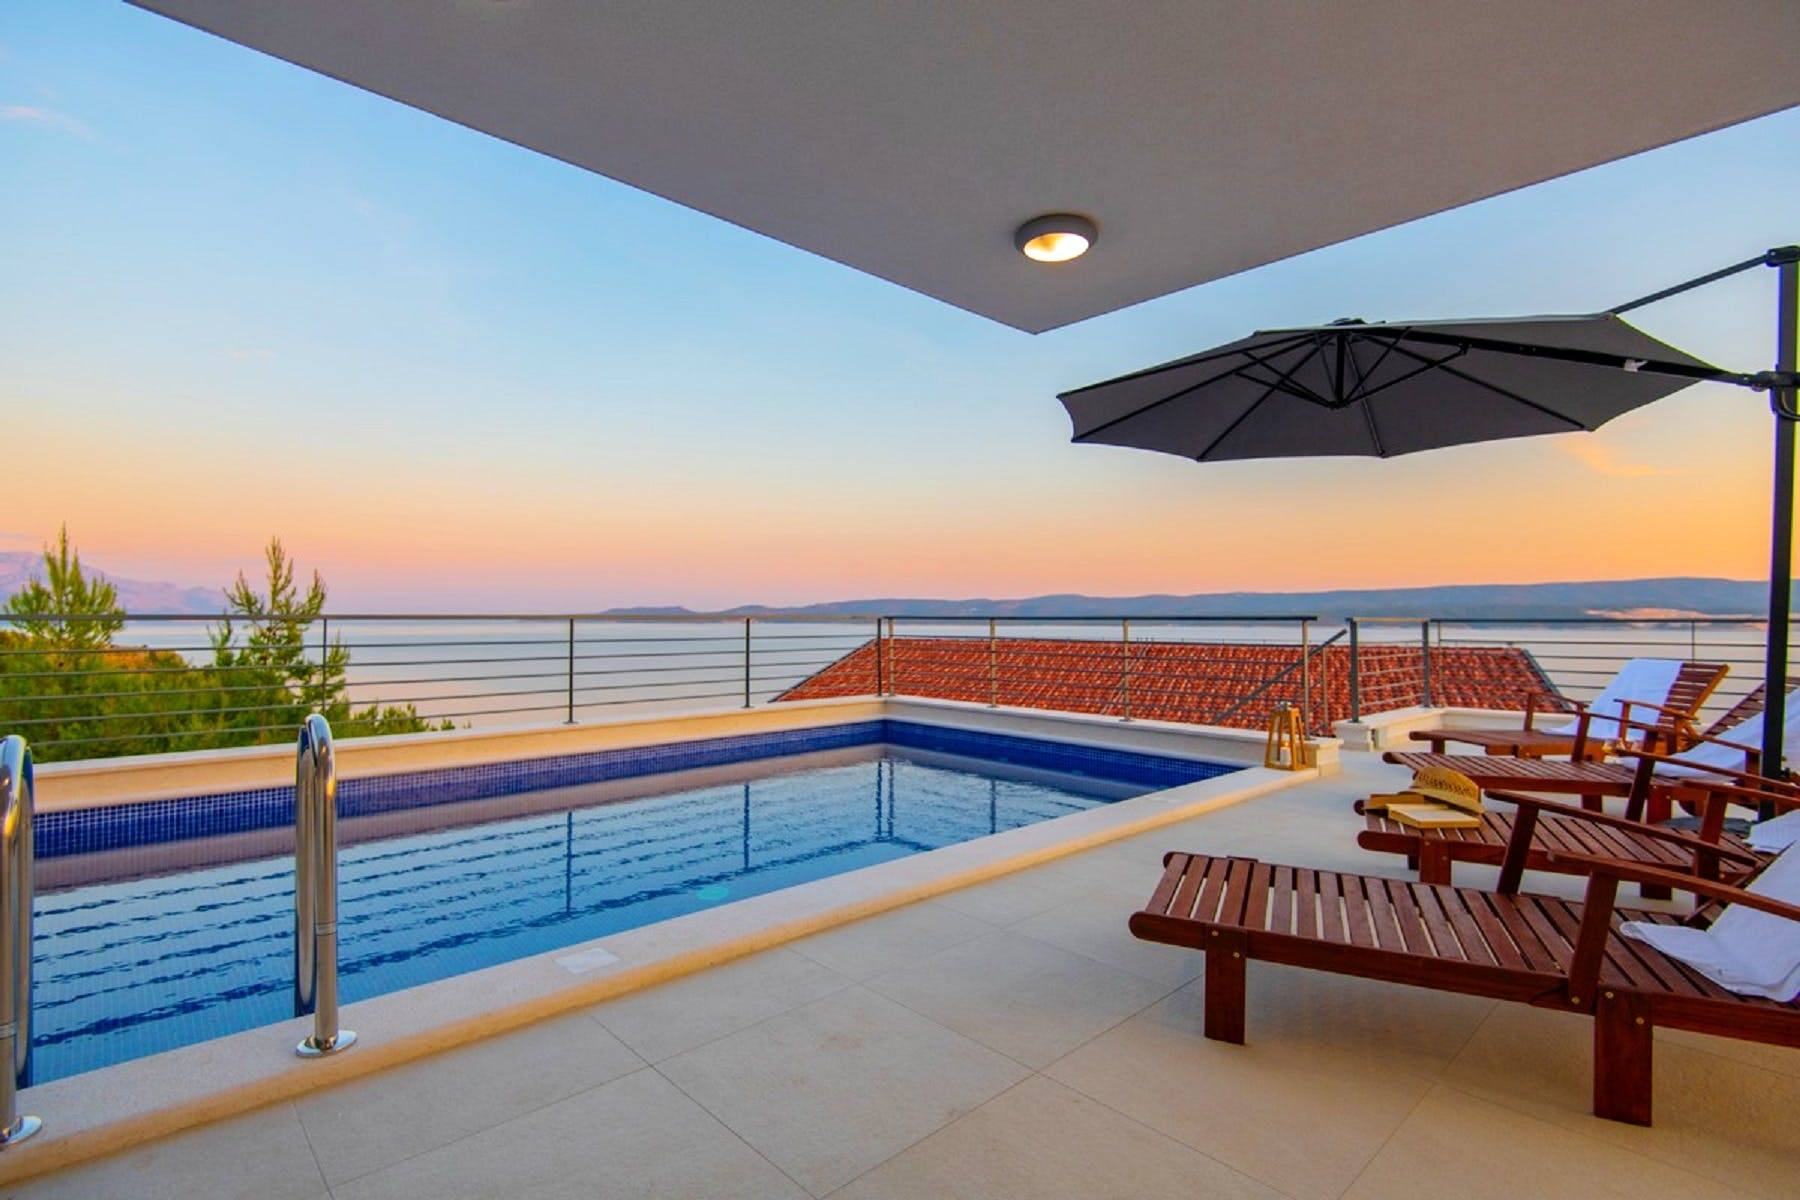 A place to relax and enjoy the view by the pool